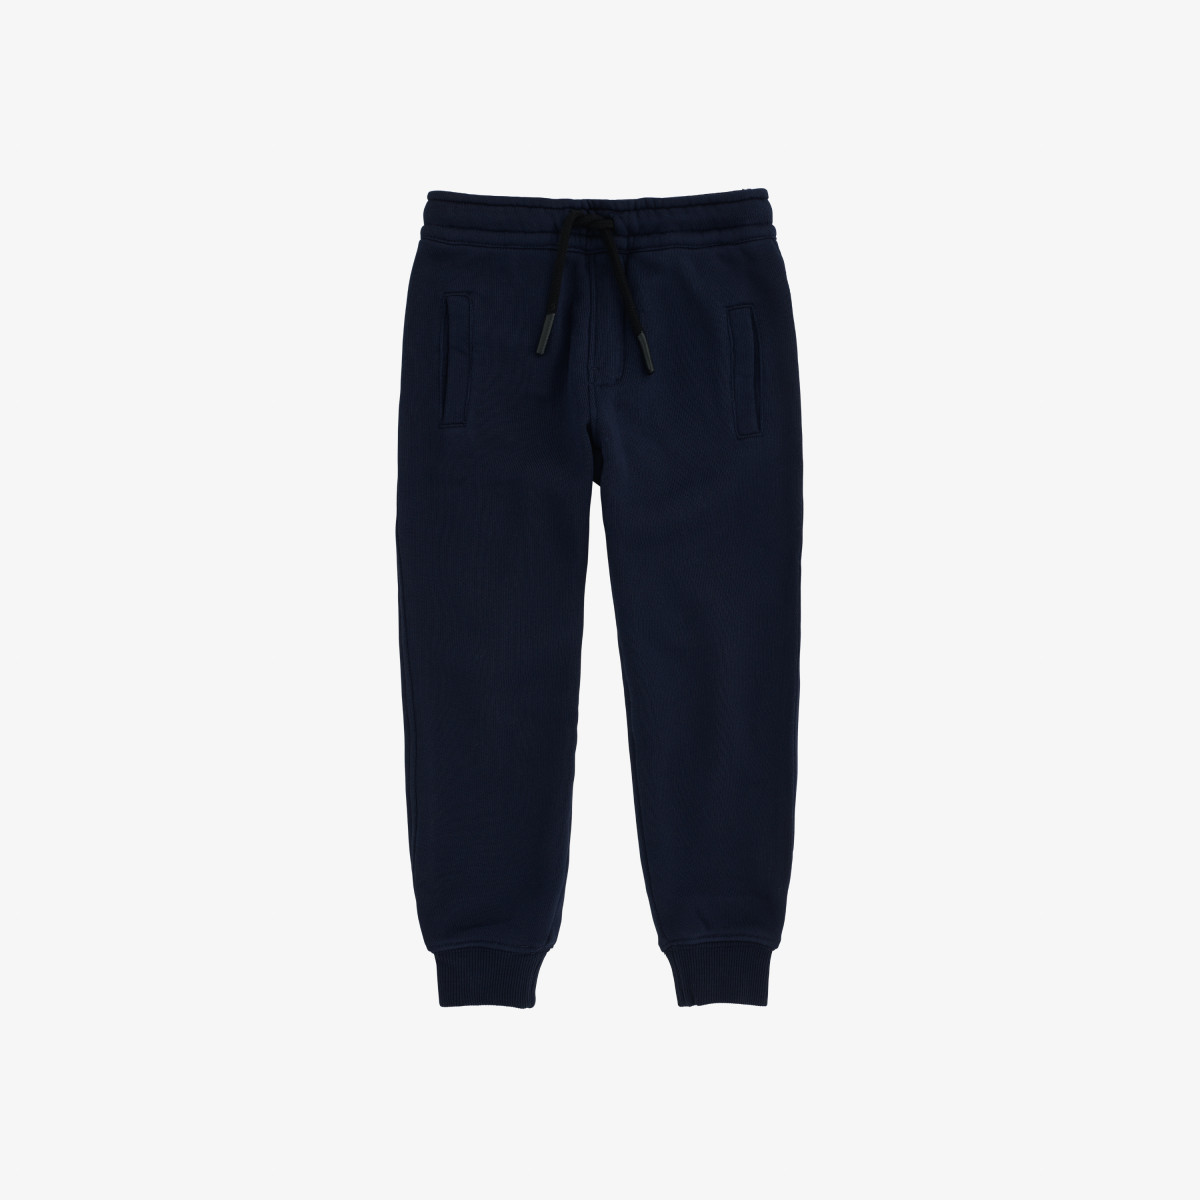 BOY'S PANT LONG BASIC COTT.FL NAVY BLUE